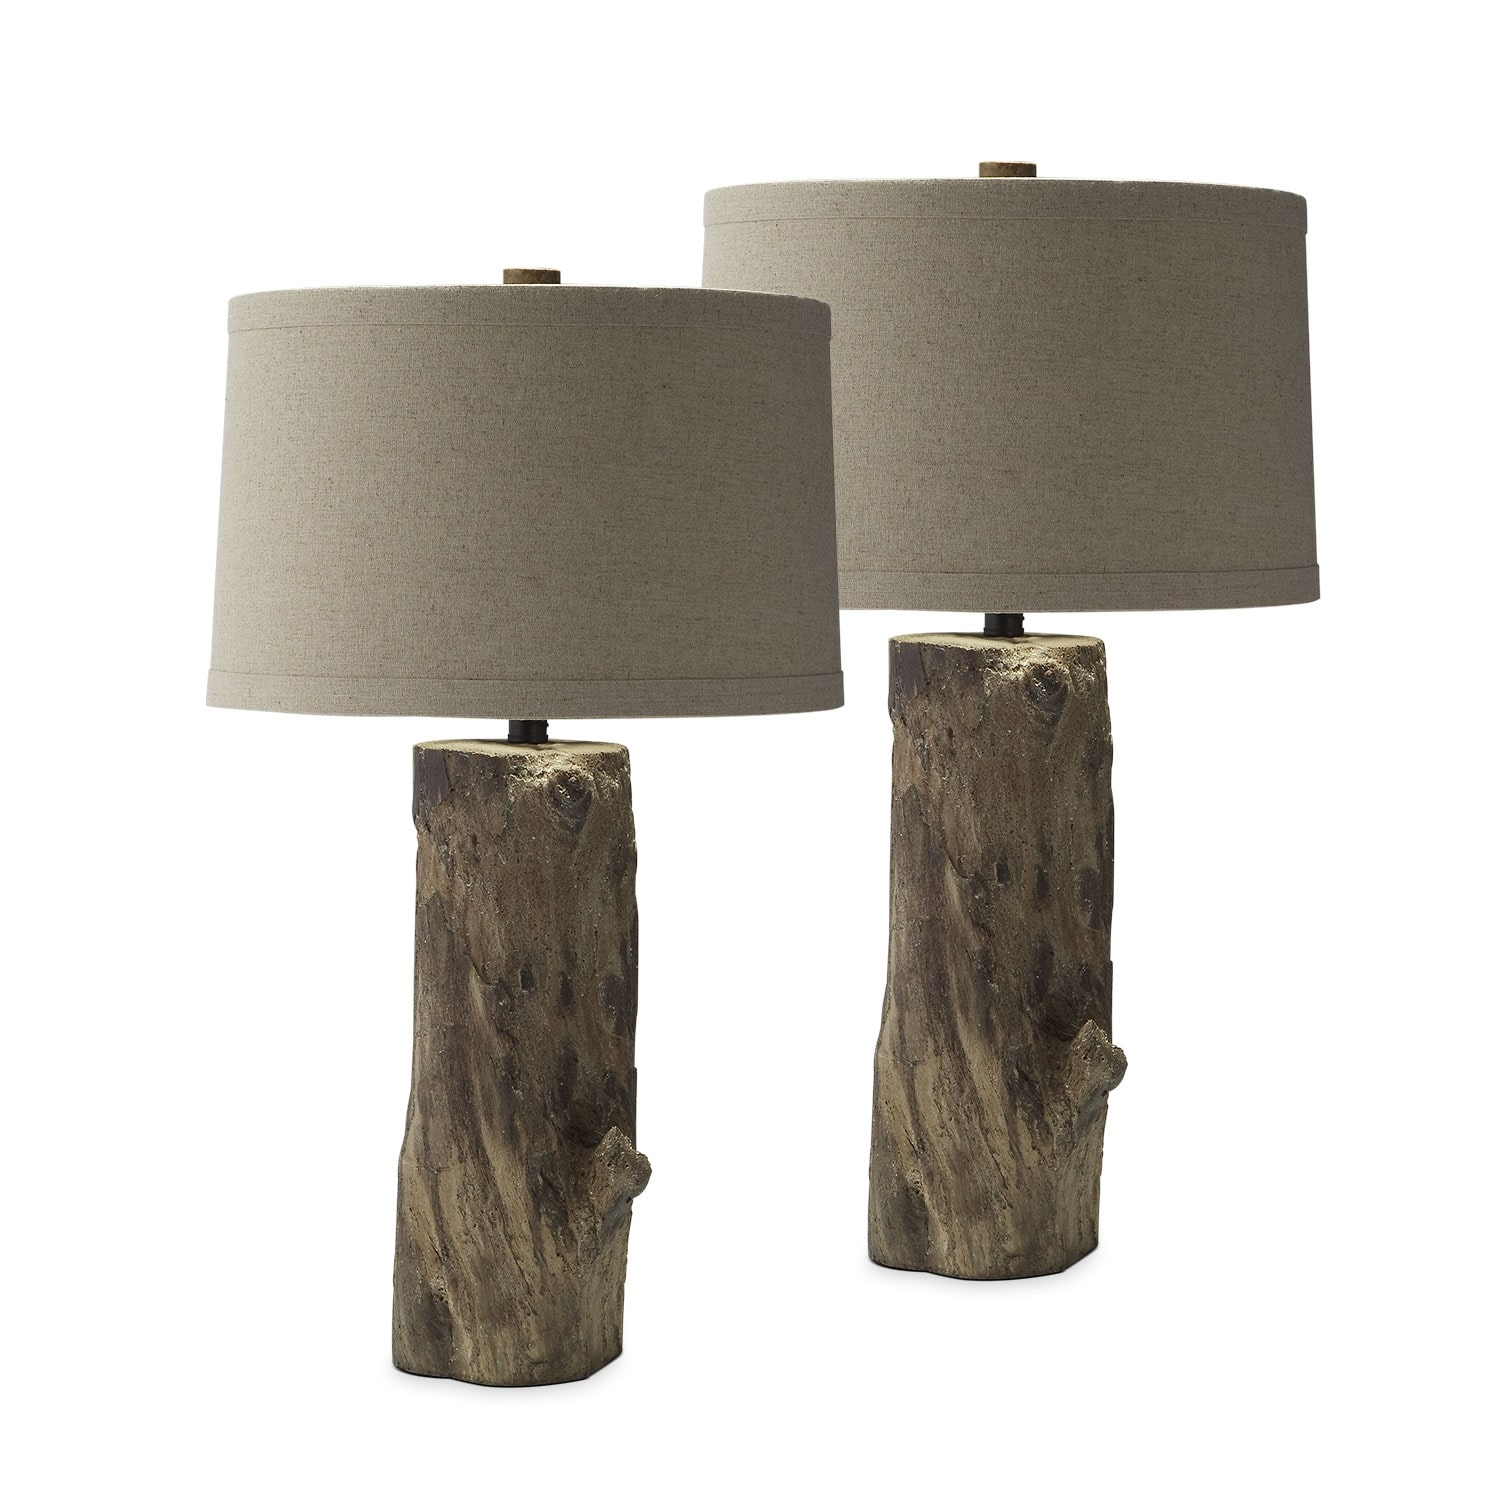 Home Accessories - Faux Wood Stump 2-Pack Table Lamp Set